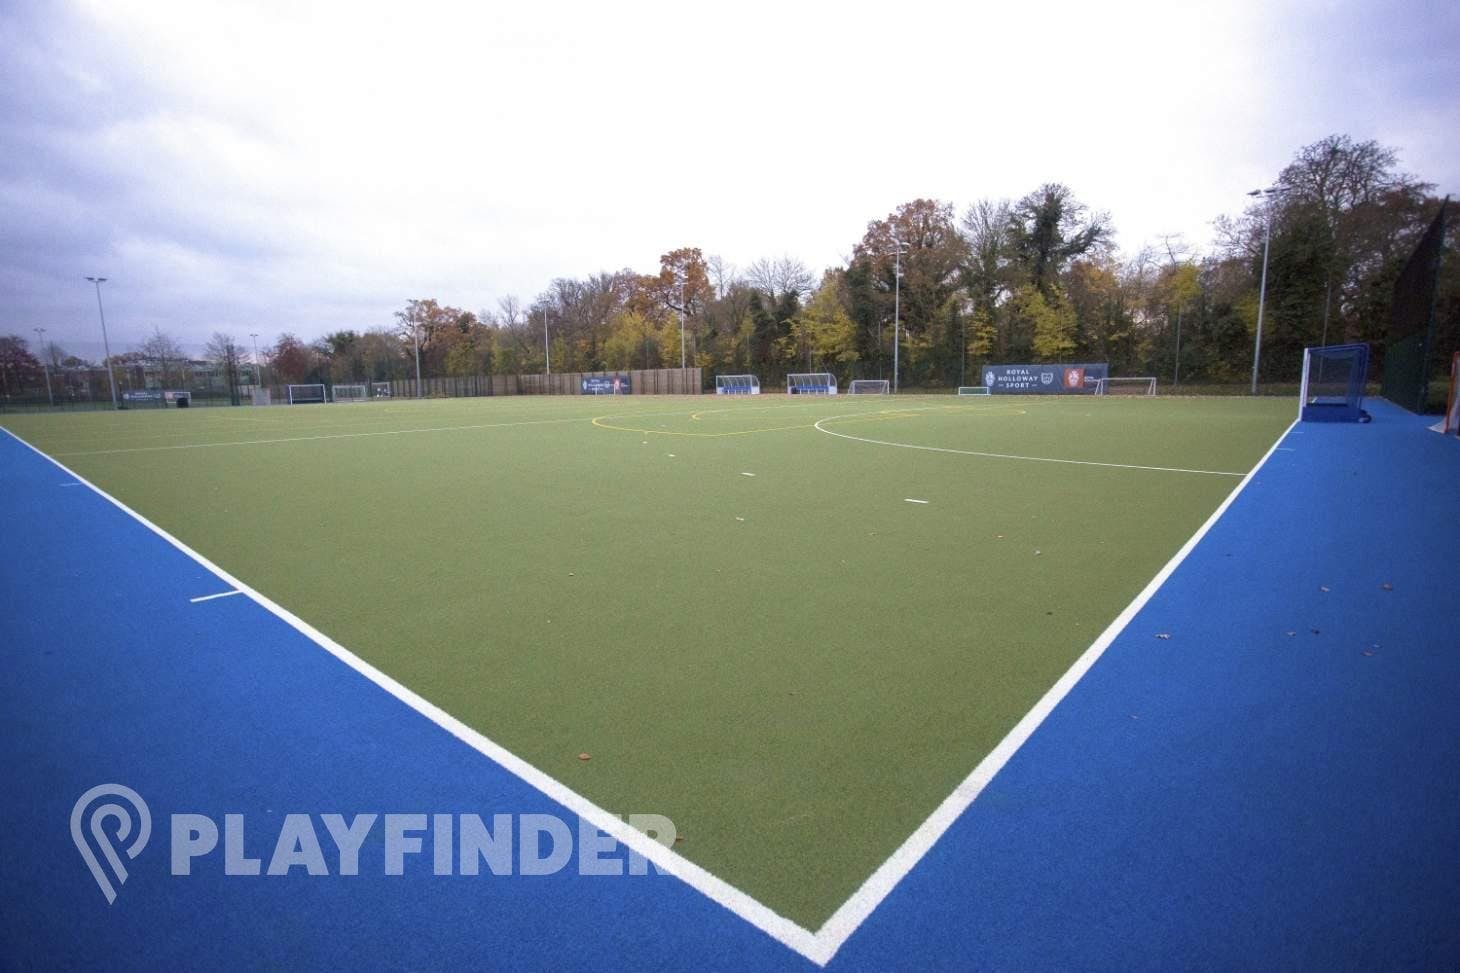 Royal Holloway University Sports Centre 11 a side | Astroturf football pitch